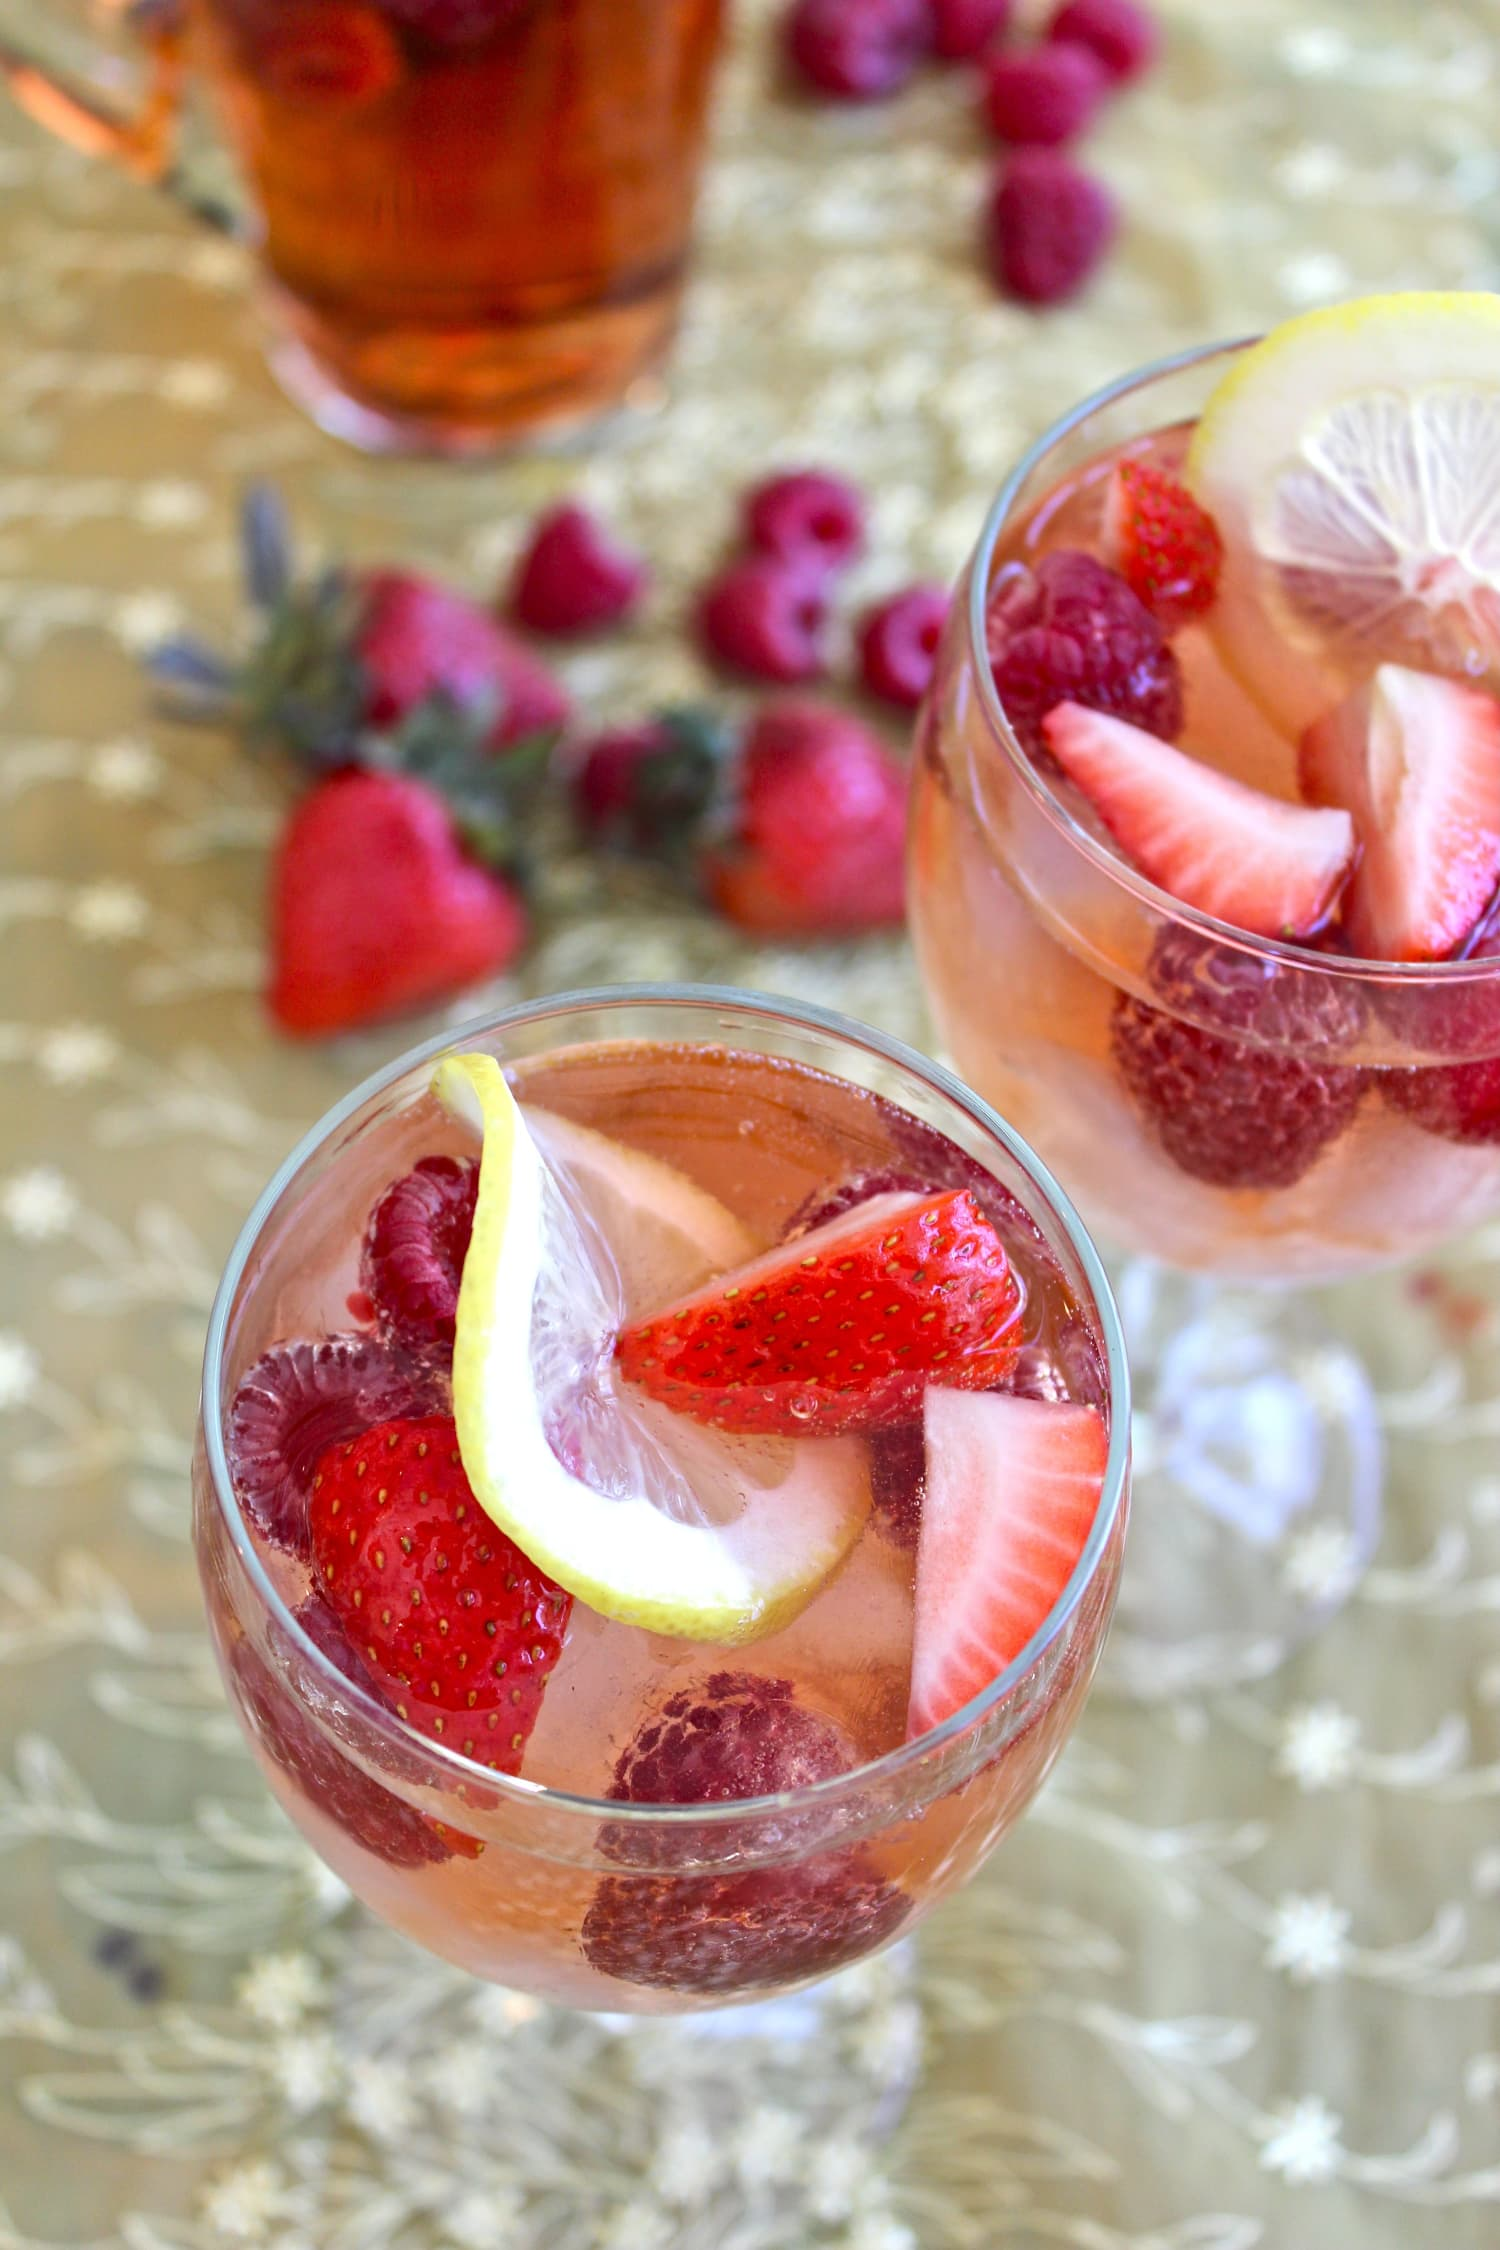 5 Delicious Ways to Use Up Overripe Strawberries